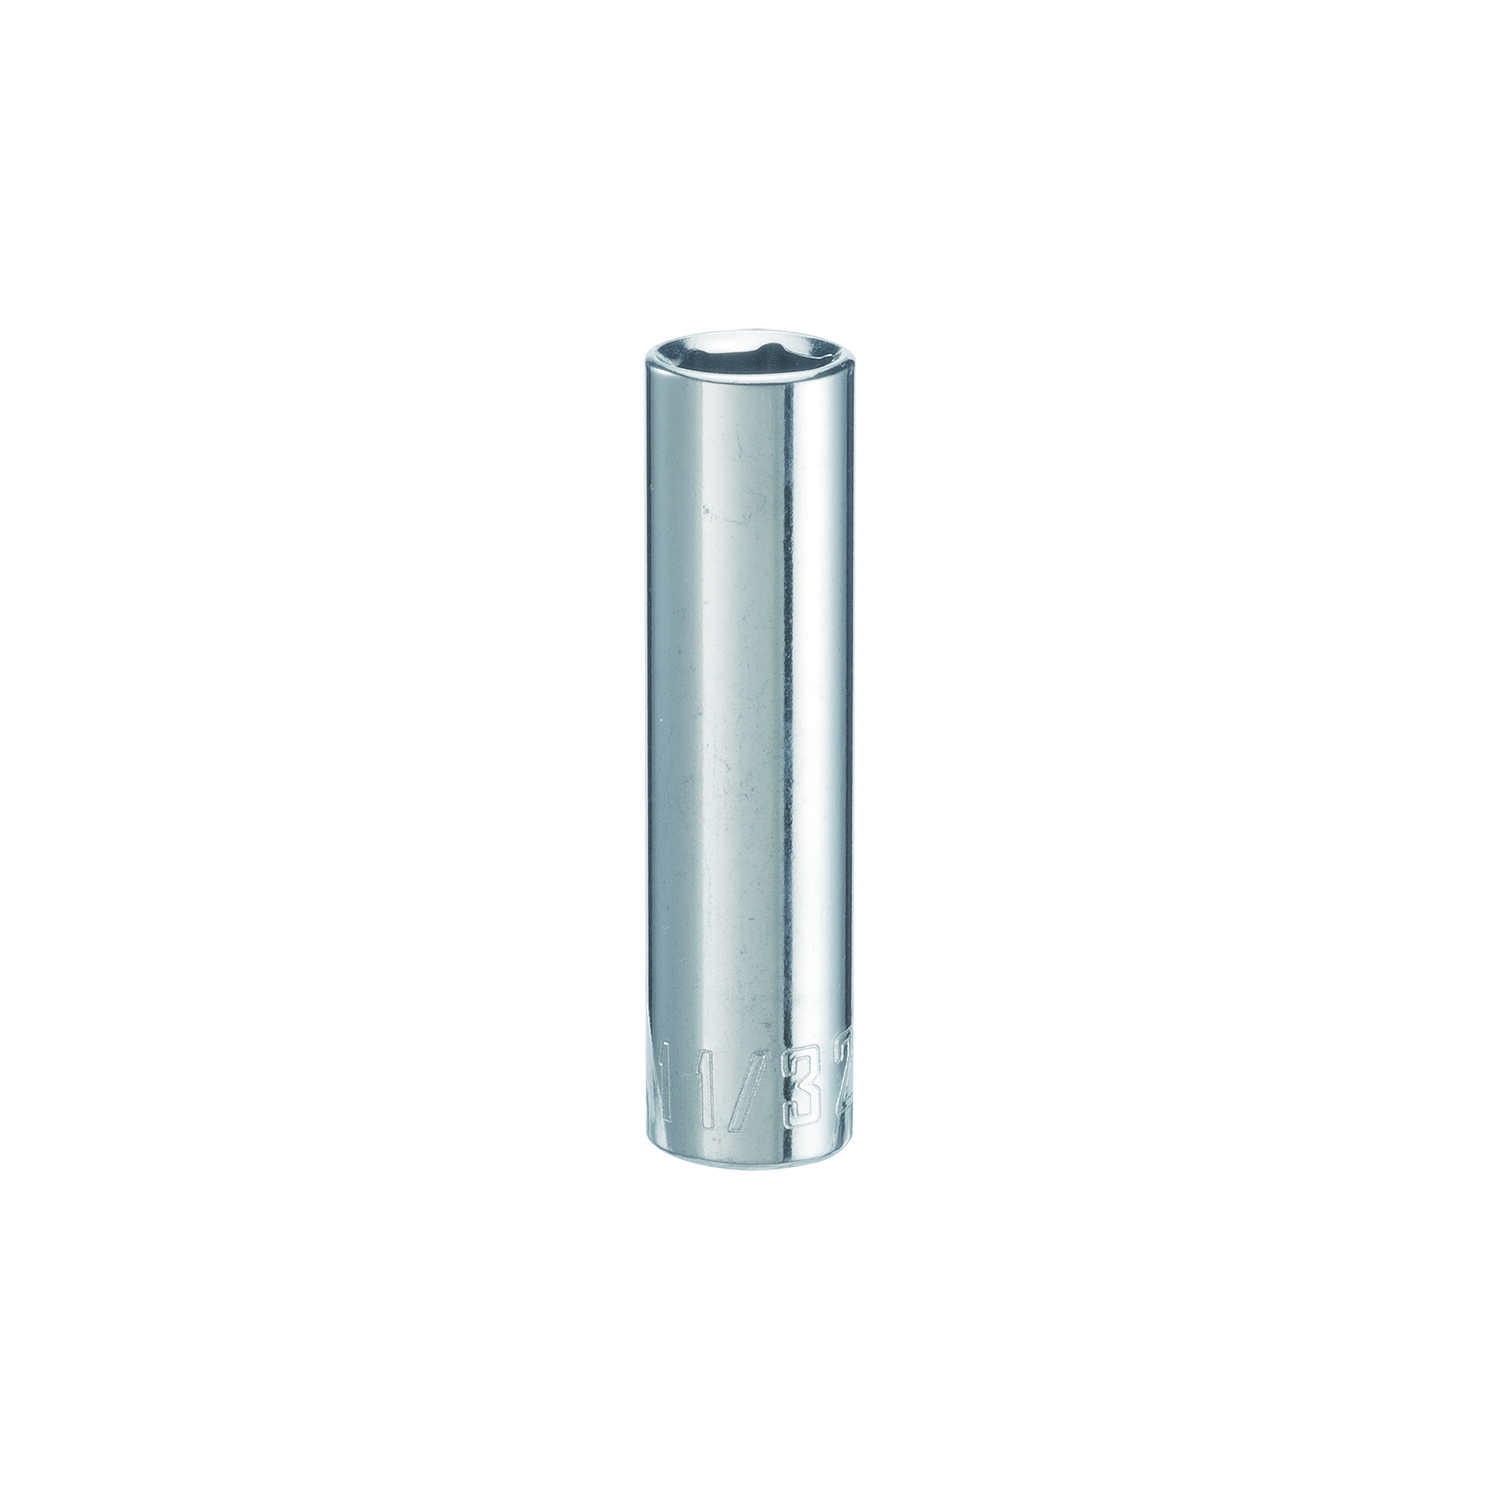 Craftsman  11/32 in.  x 1/4 in. drive  SAE  6 Point Deep  Socket  1 pc.